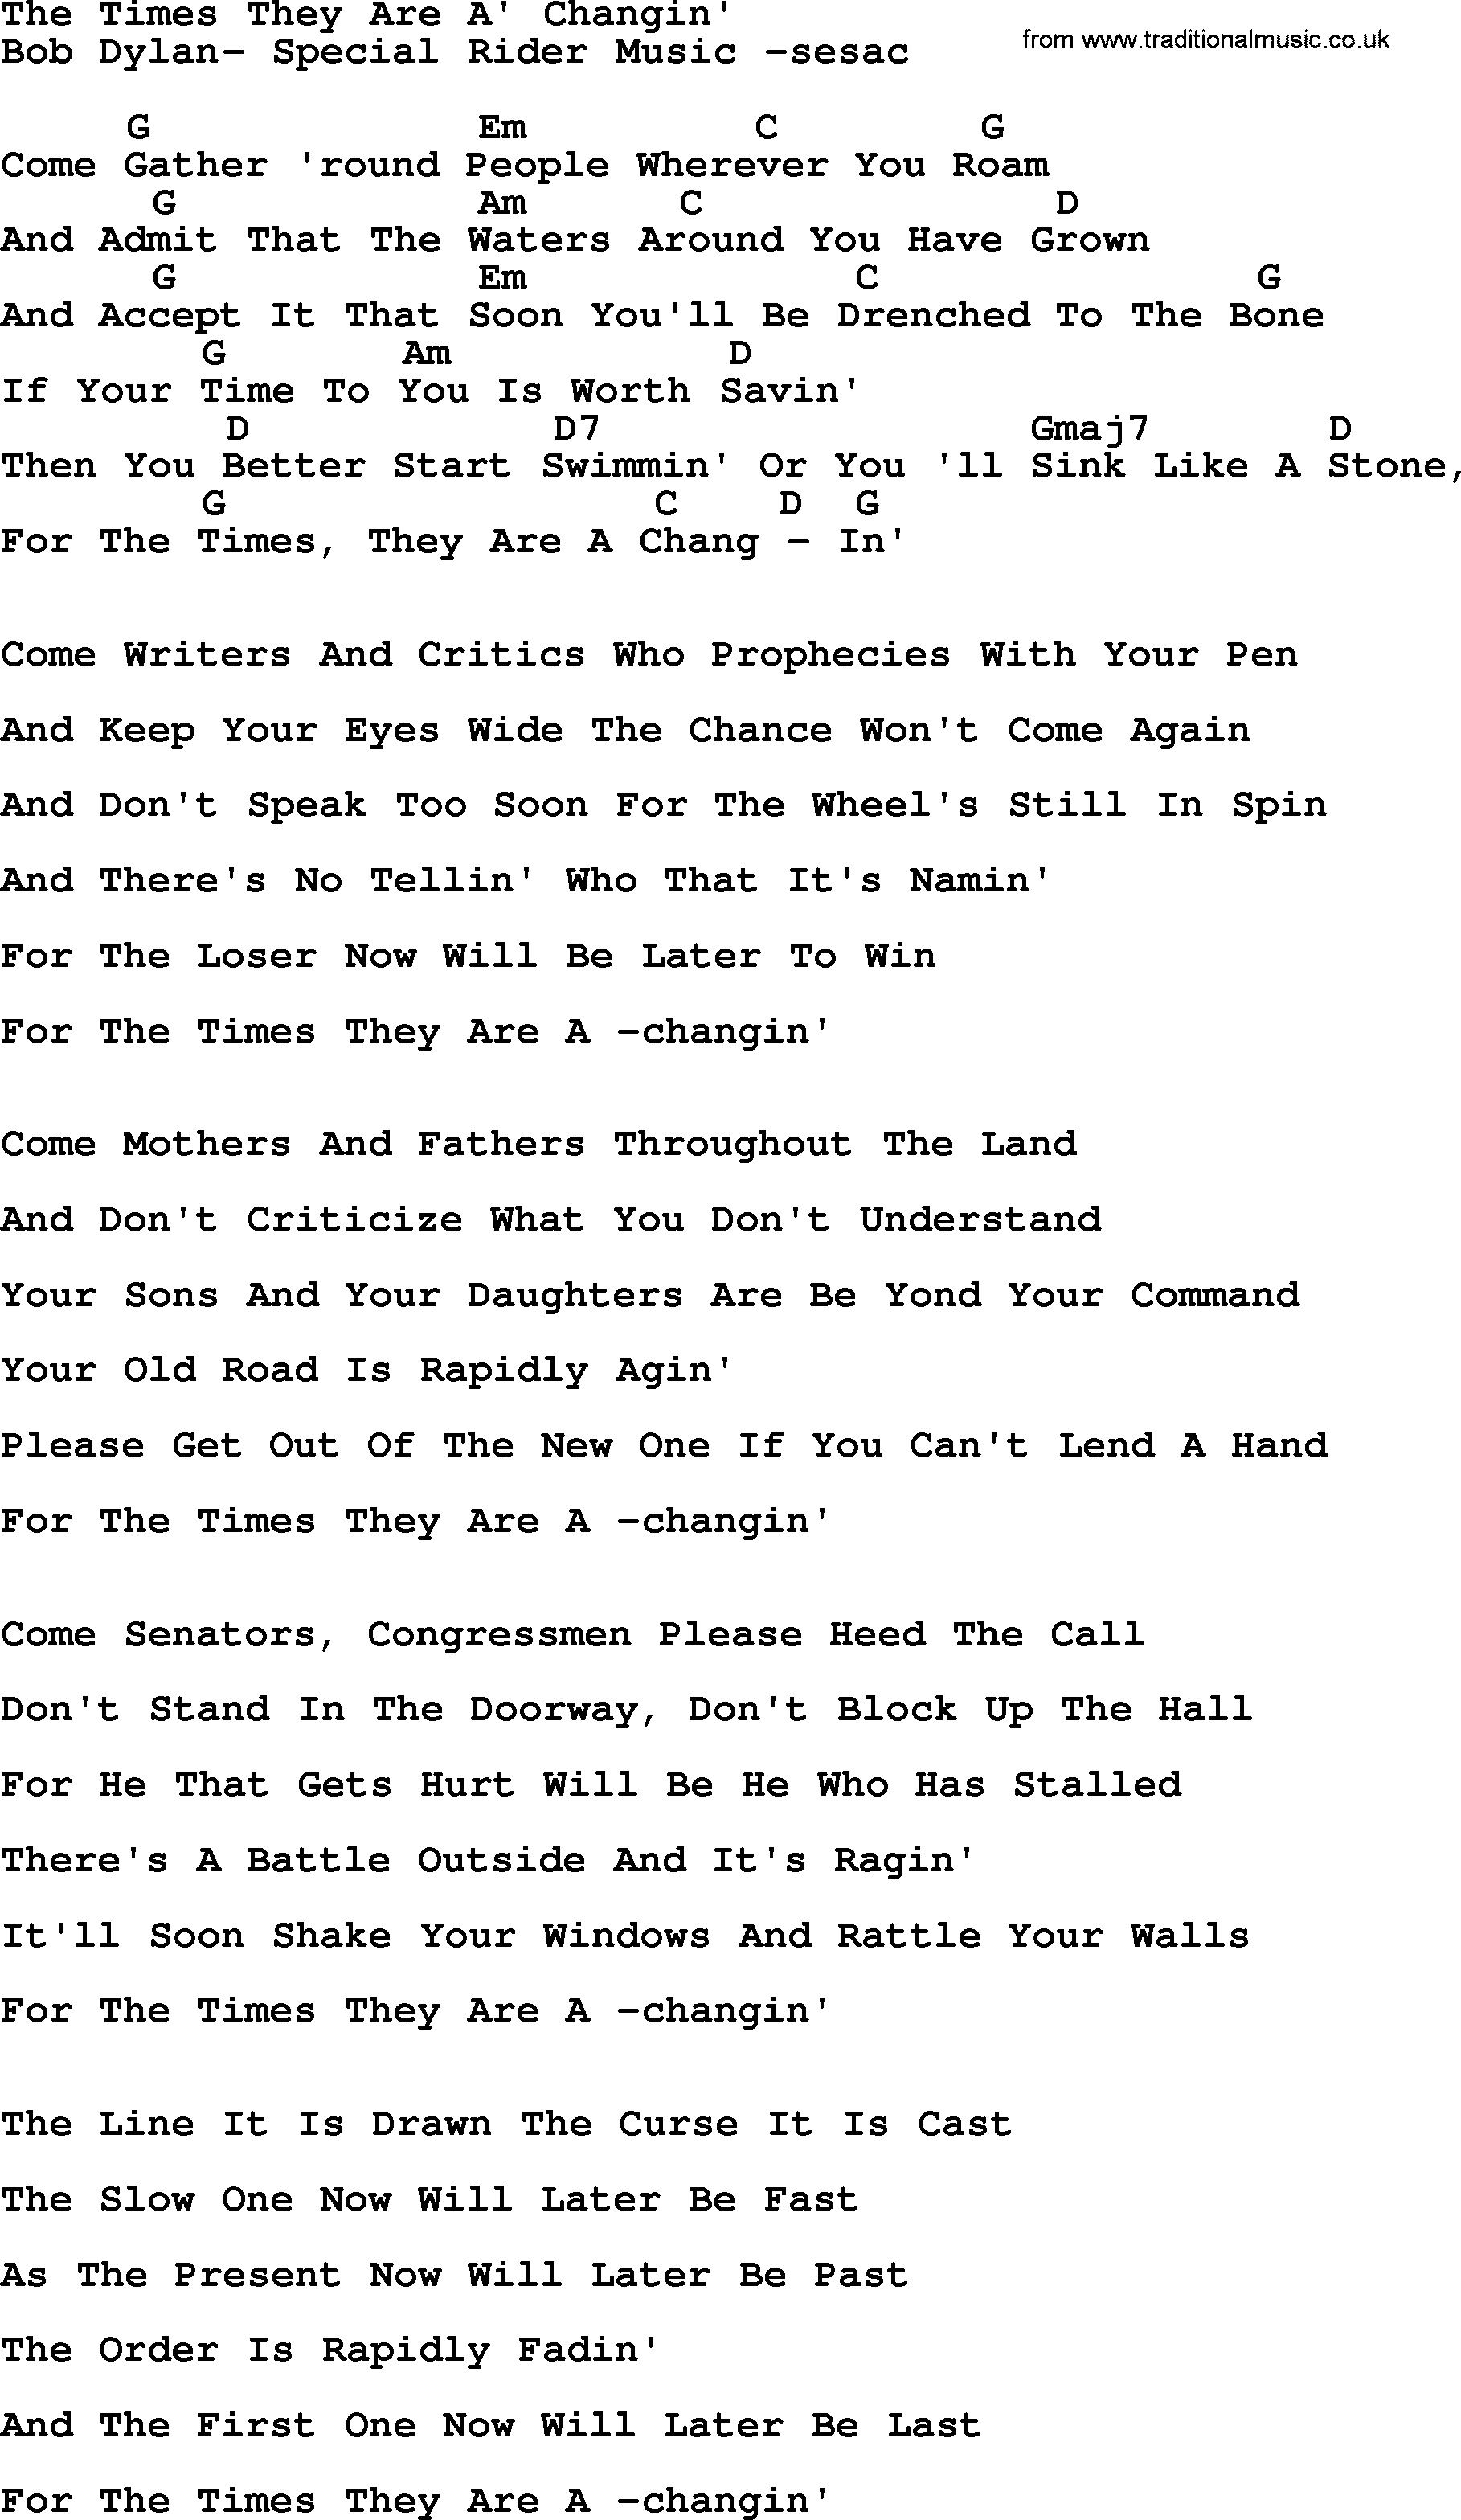 the times they are changing lyrics